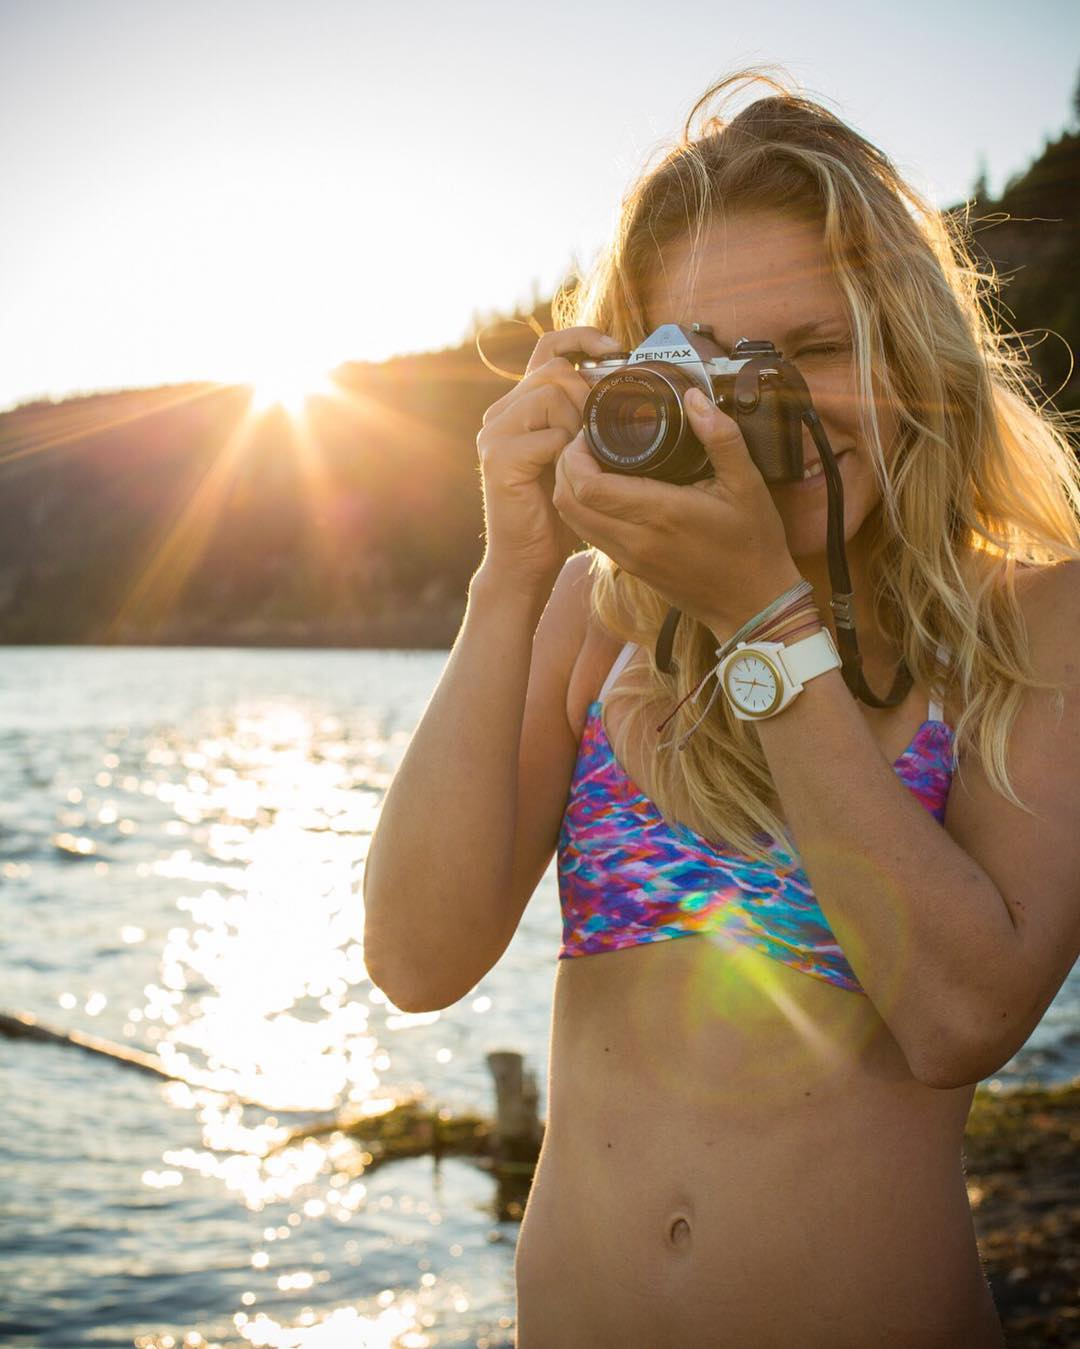 #tbt Golden hour Hood River 2014 with @colleenjcarroll . Pic: @lance_koudele #sensidawn